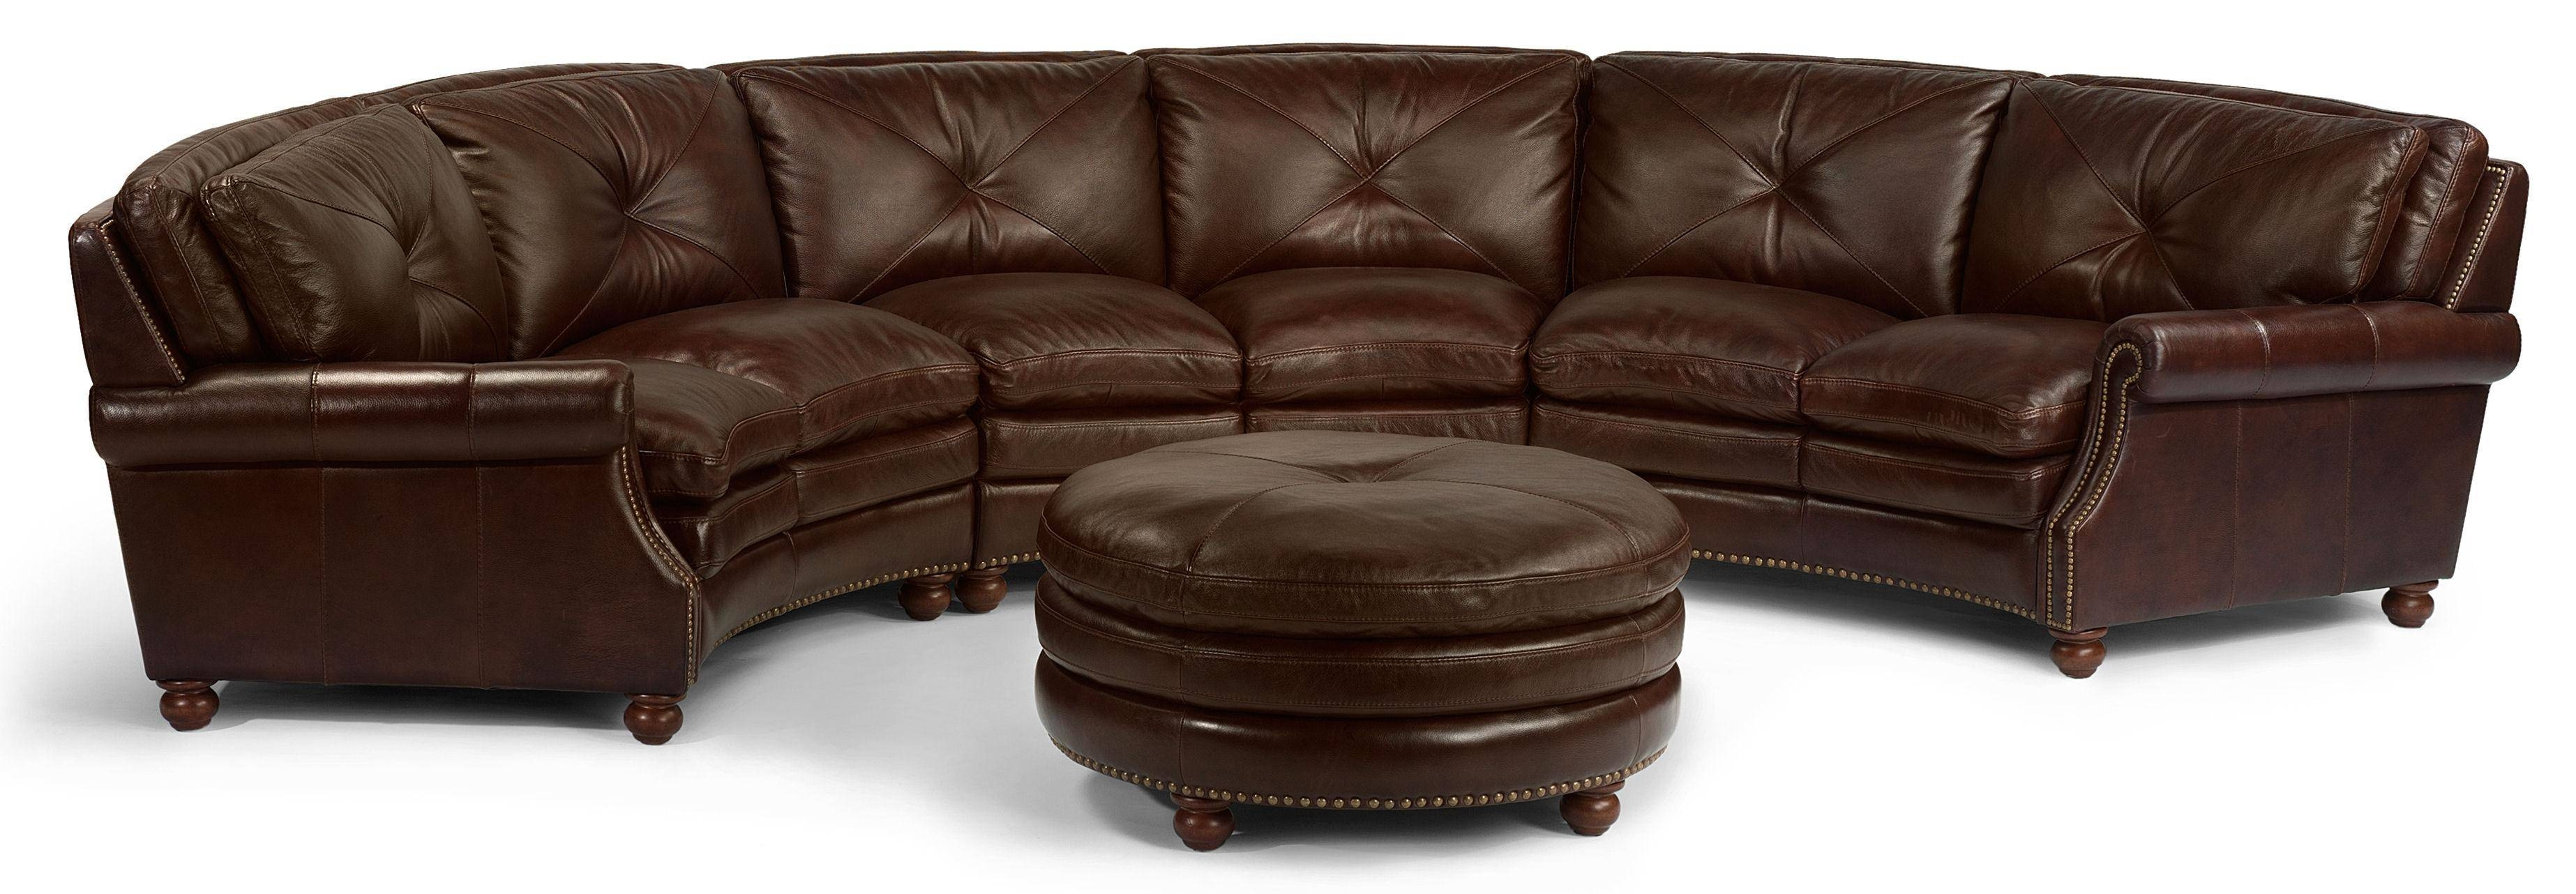 Flexsteel Latitudes-Suffolk Round Sectional Sofa With Nailhead inside Circular Sectional Sofa (Image 10 of 30)